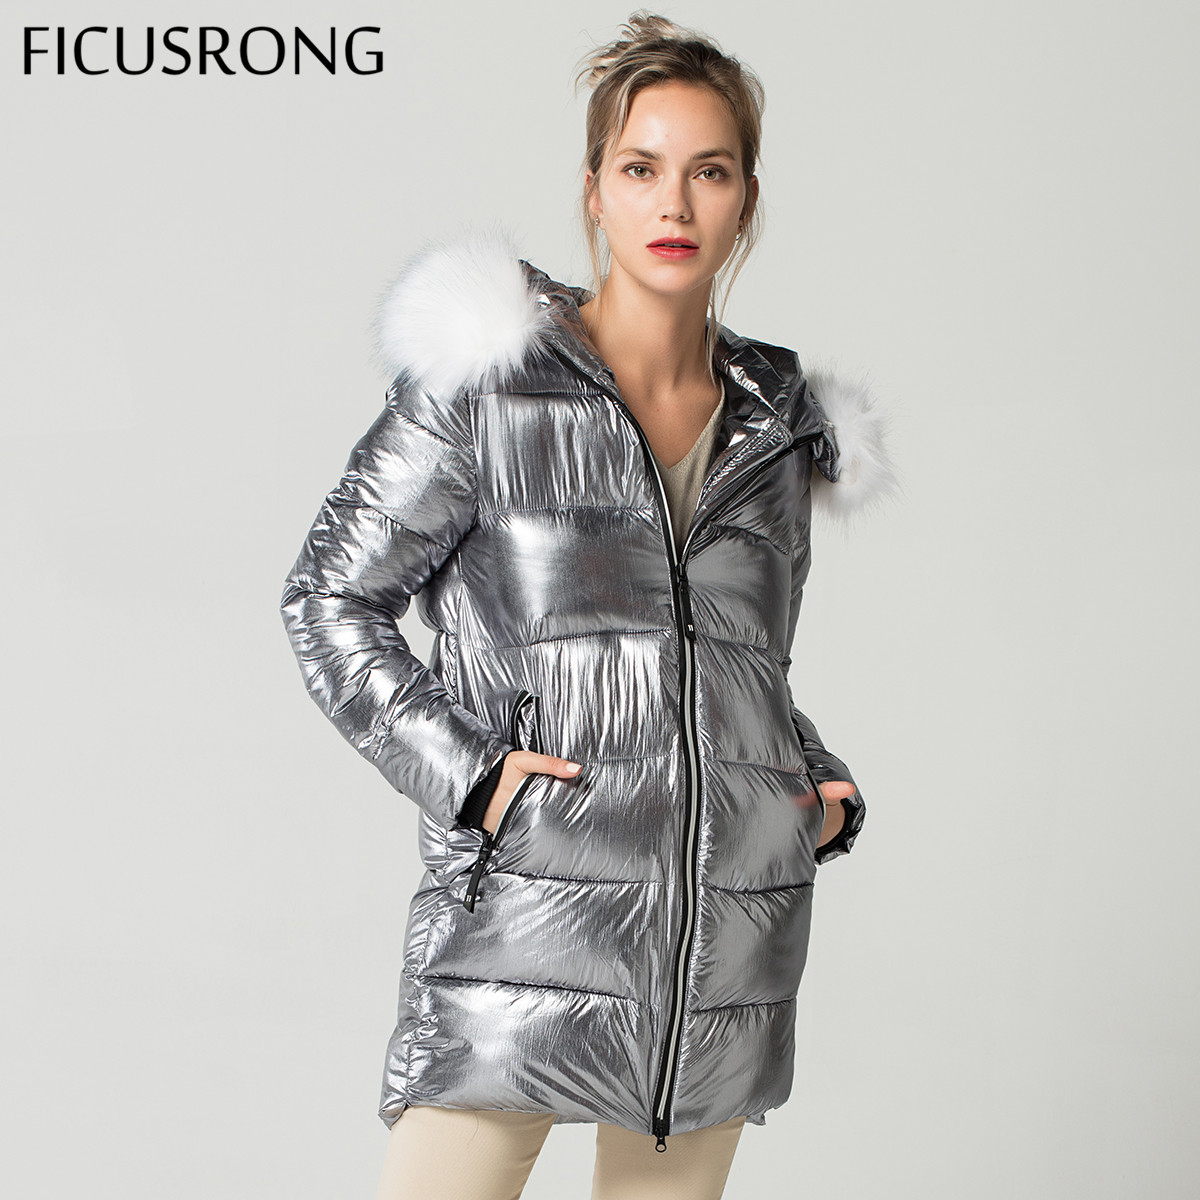 Elegant White Fur Collar Coat Winter Jacket Women Long Down   Parkas   Female Warm Hooded Jacket Coat Silver Gray 2018 New FICUSRONG